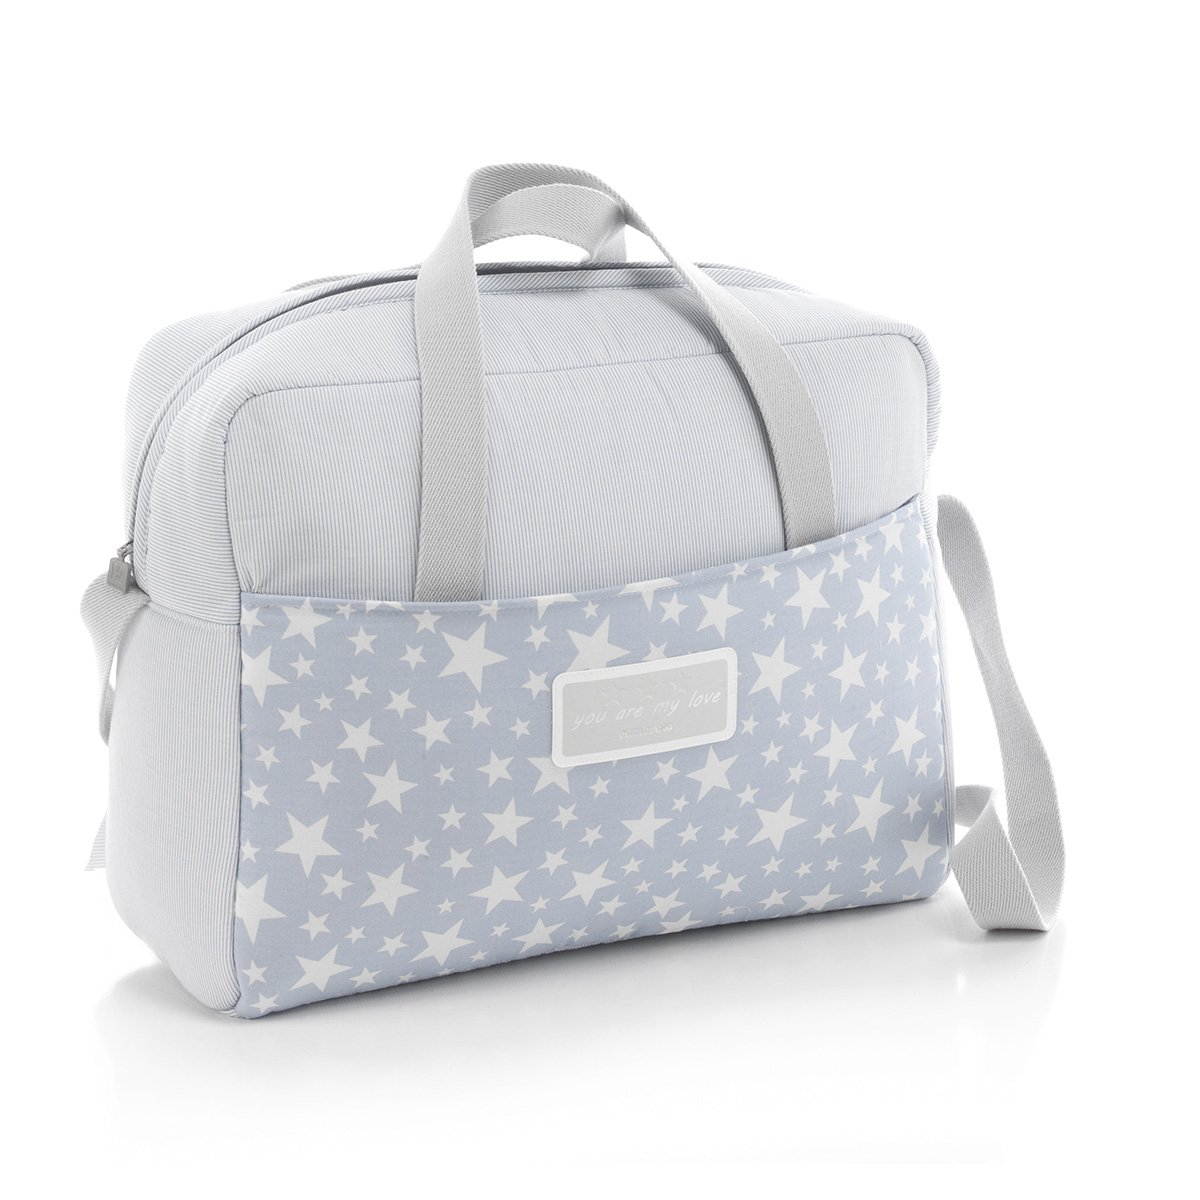 Cambrass Star - Bolso maternal tipo maleta, 32 x 39 x 17 cm, color